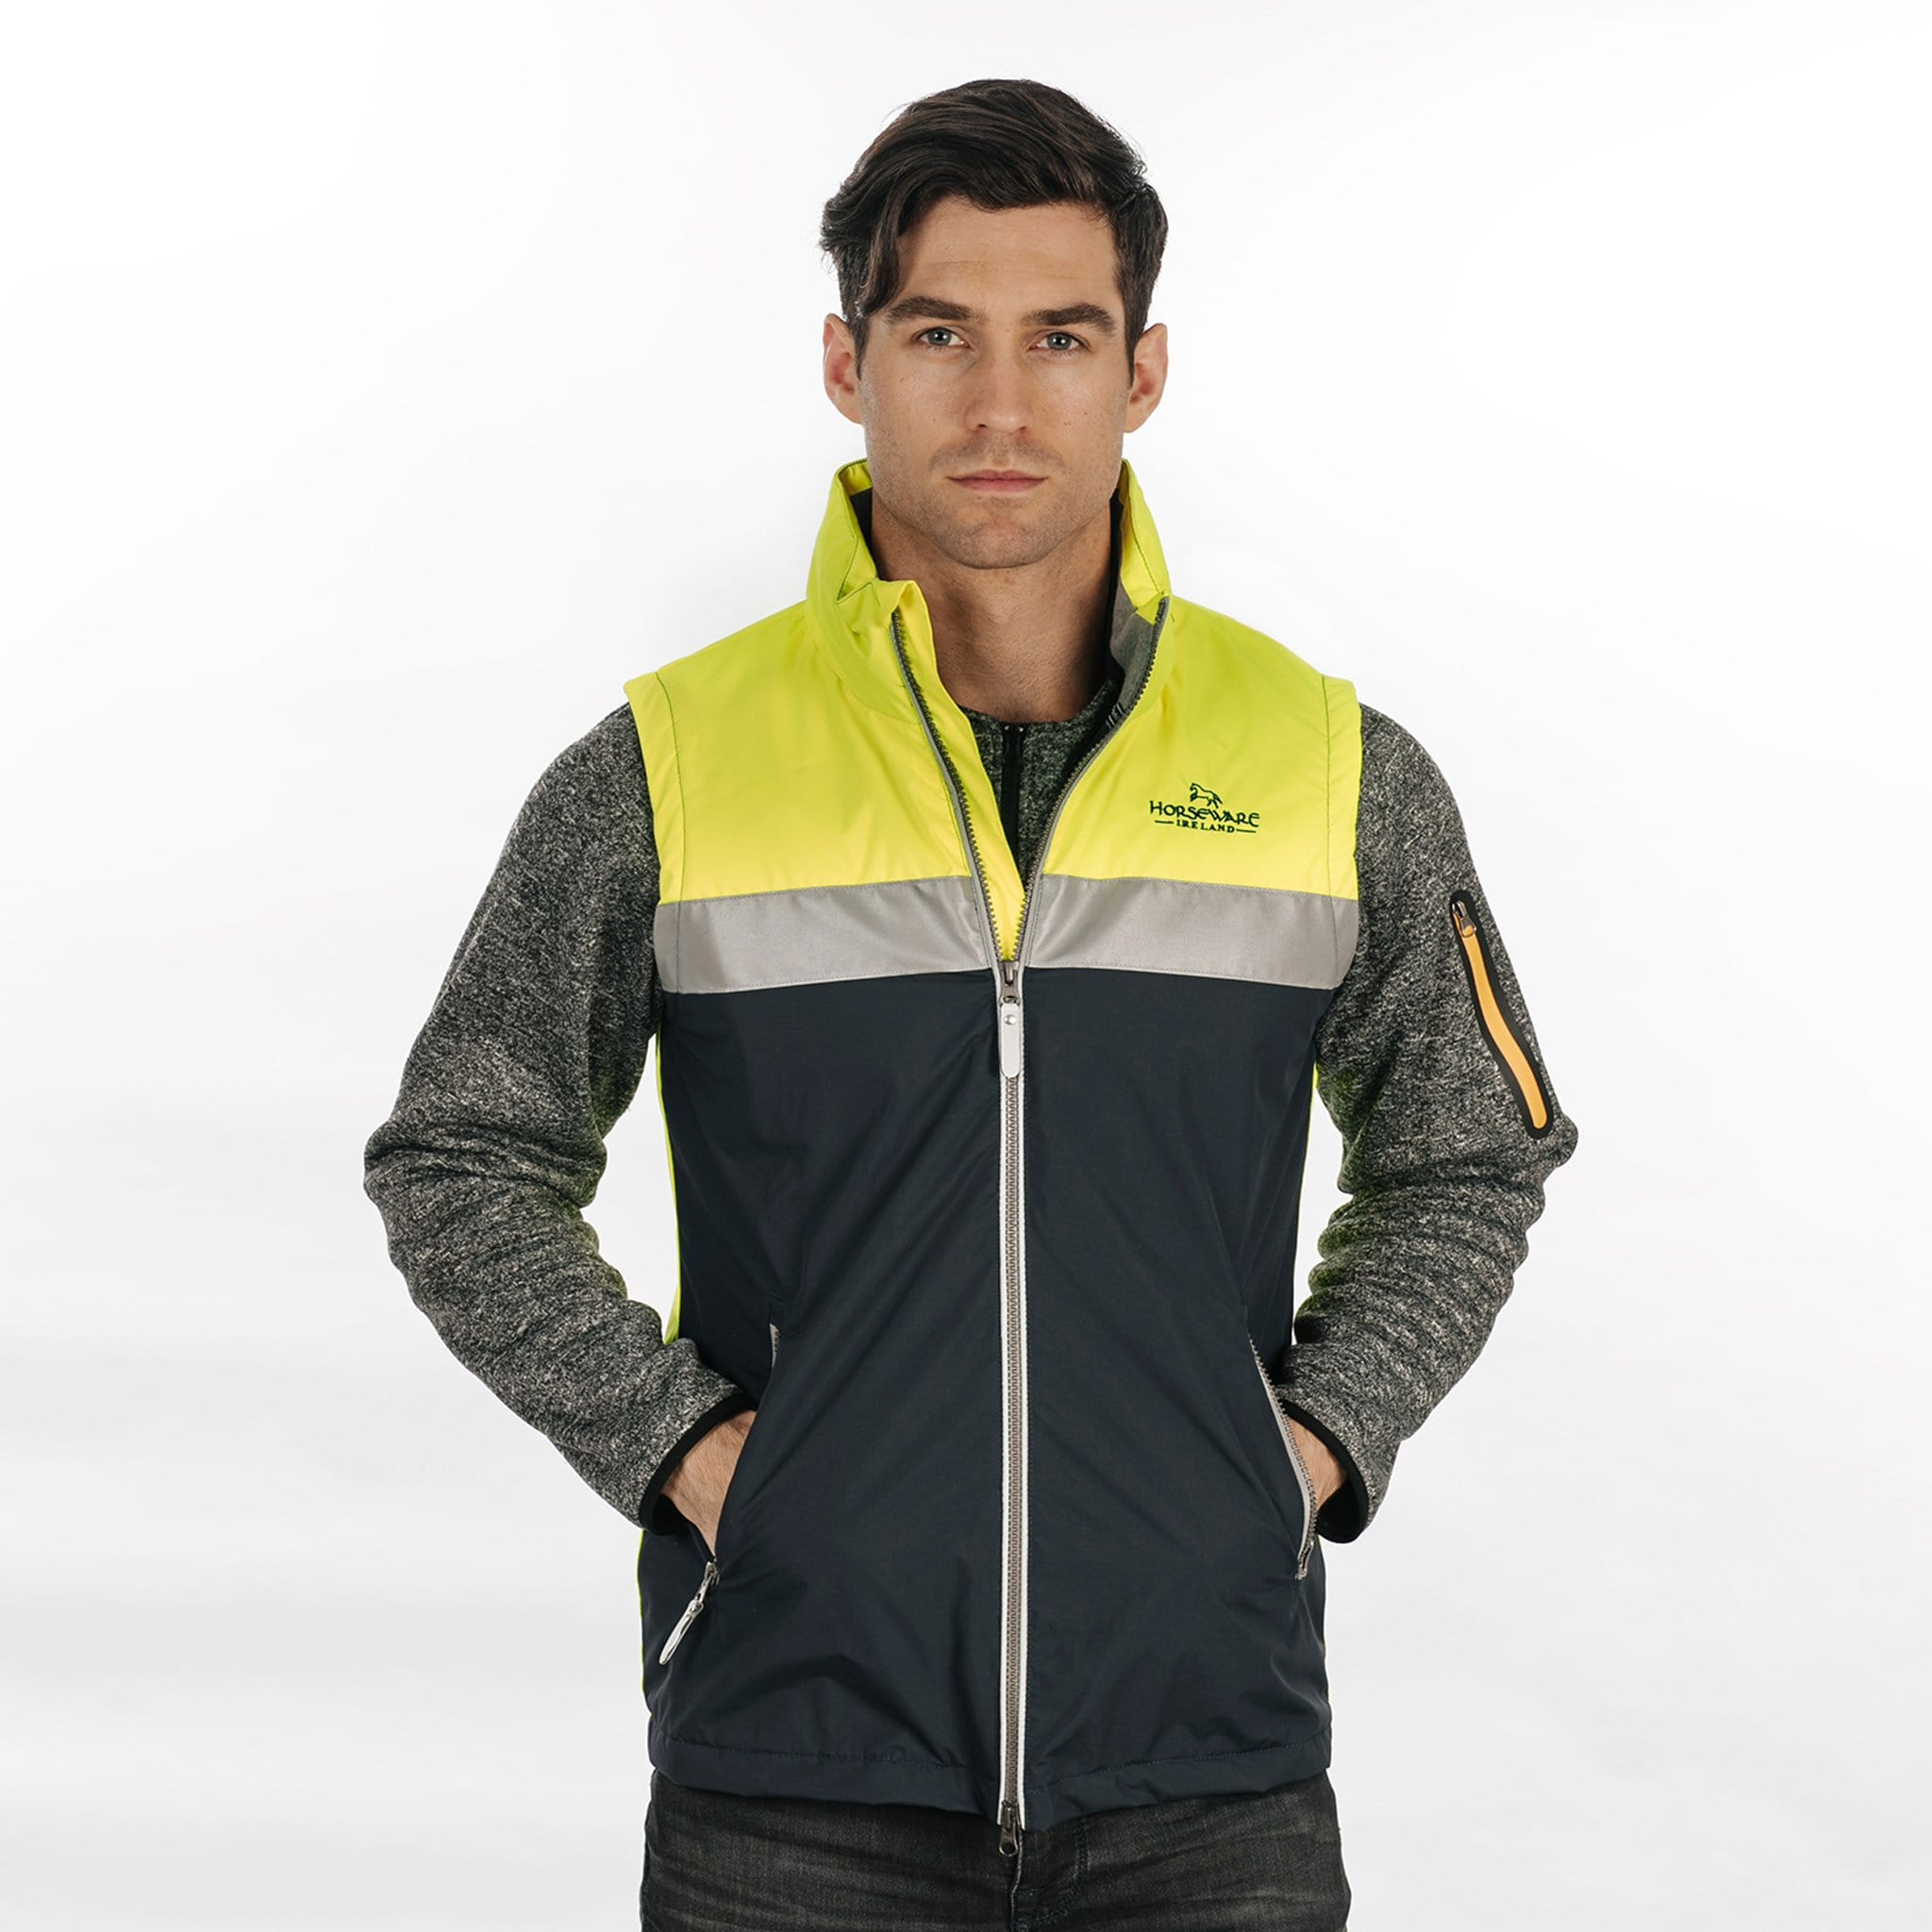 Horseware Corrib Neon Gilet CBHV02 On Male Model Front